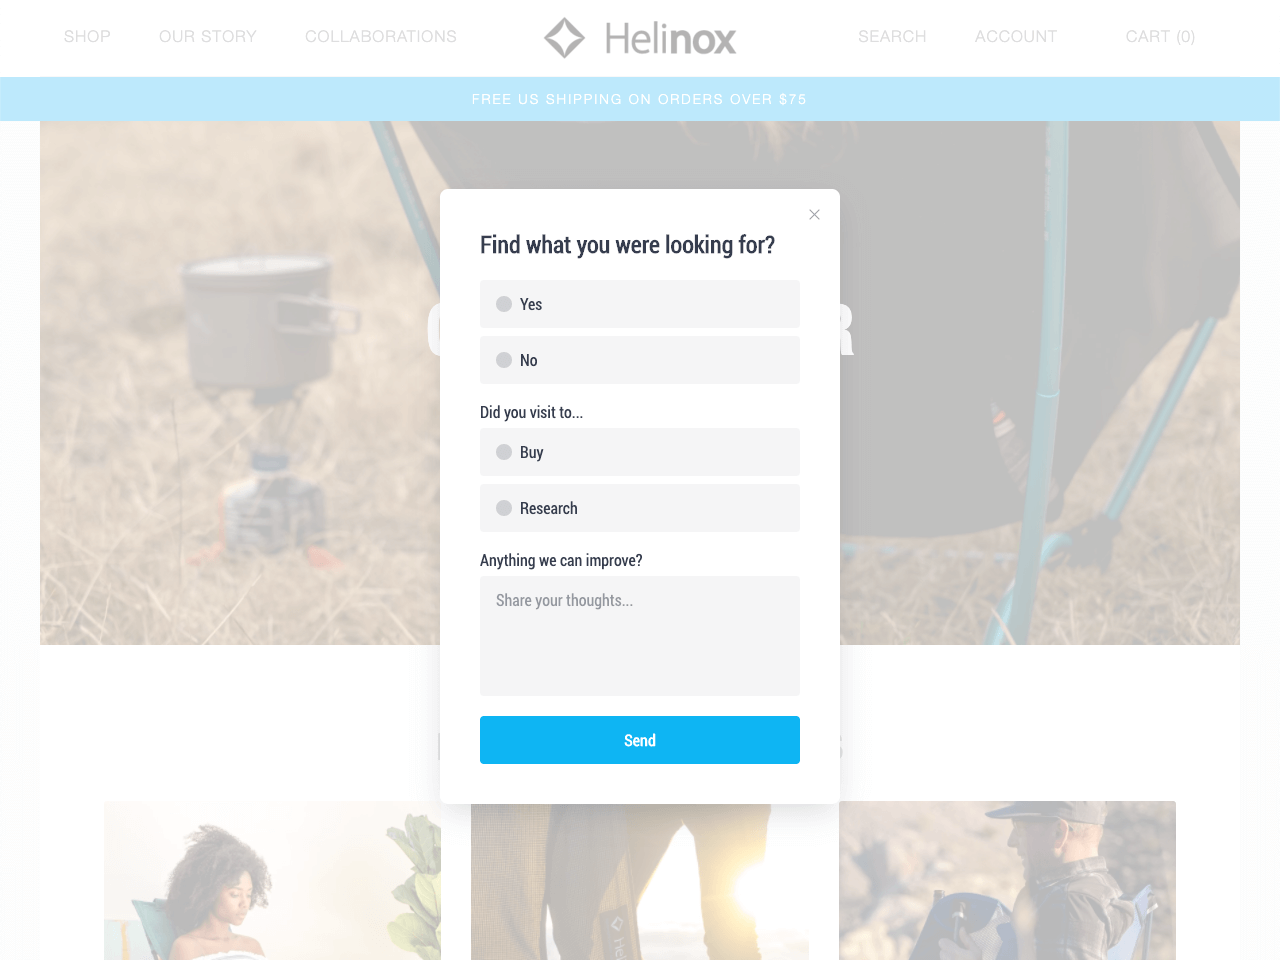 Helinox uses a survey popup to conduct marketing research in their store